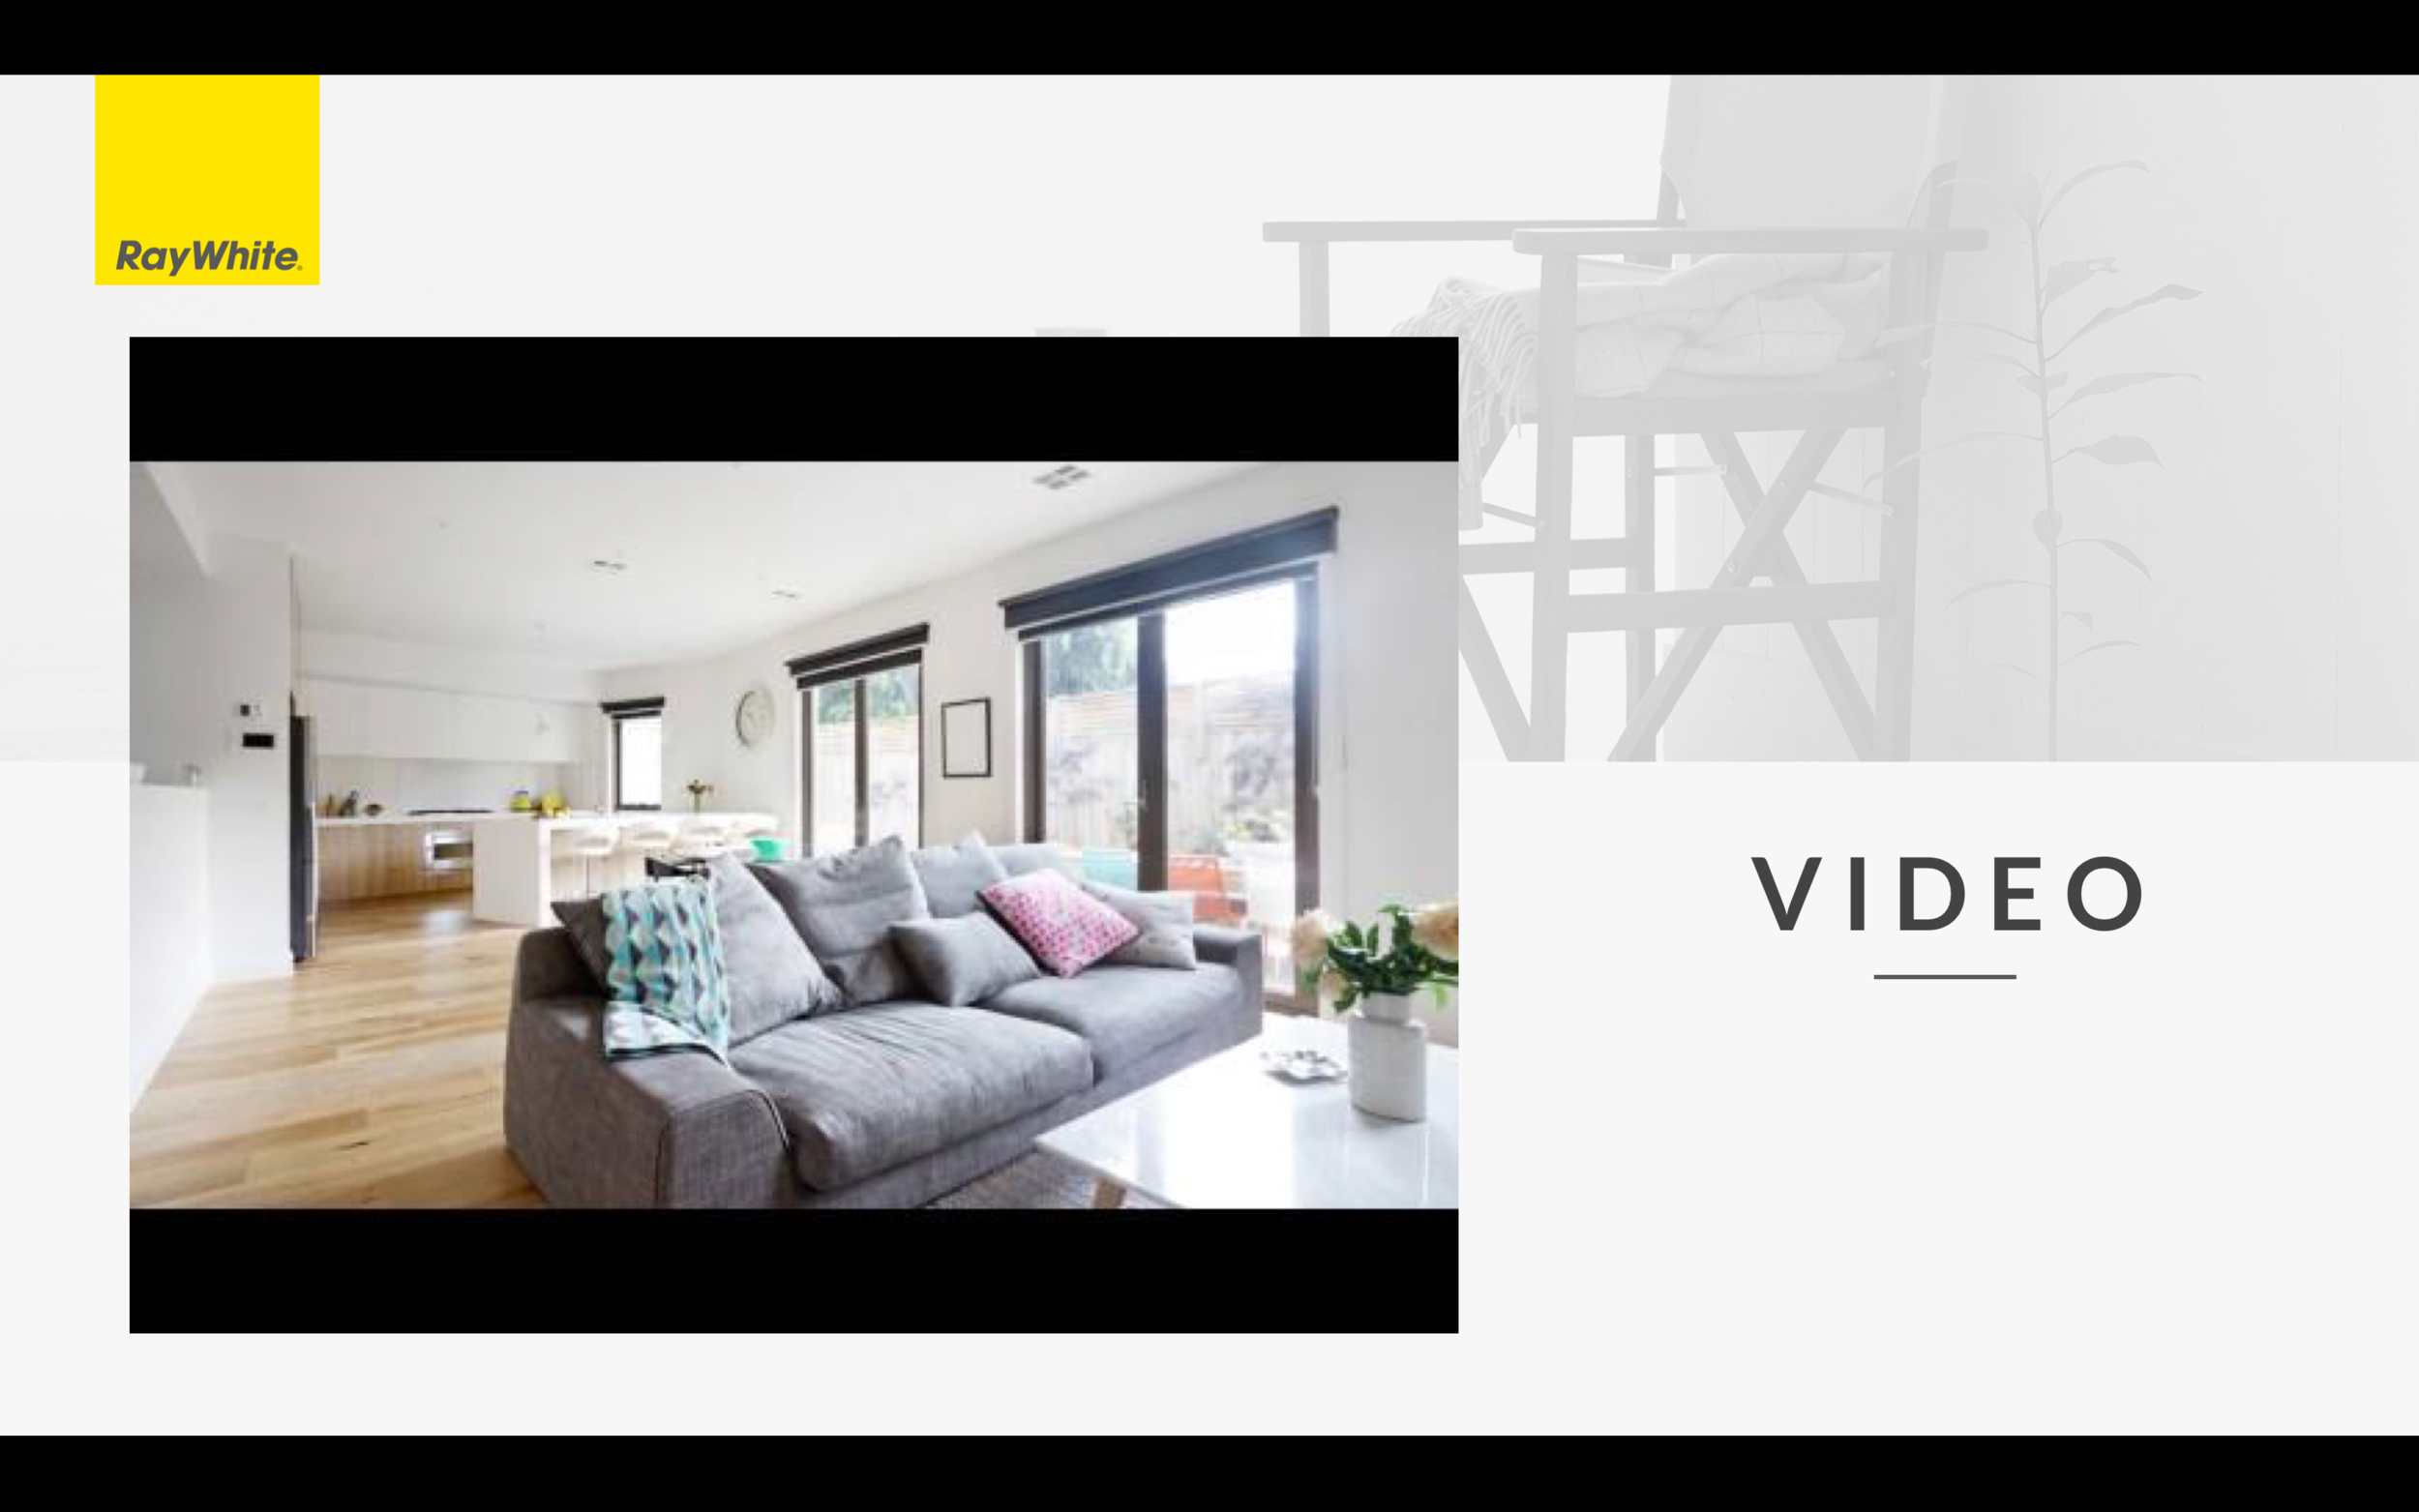 Video adds - Targeted adds google + facebook